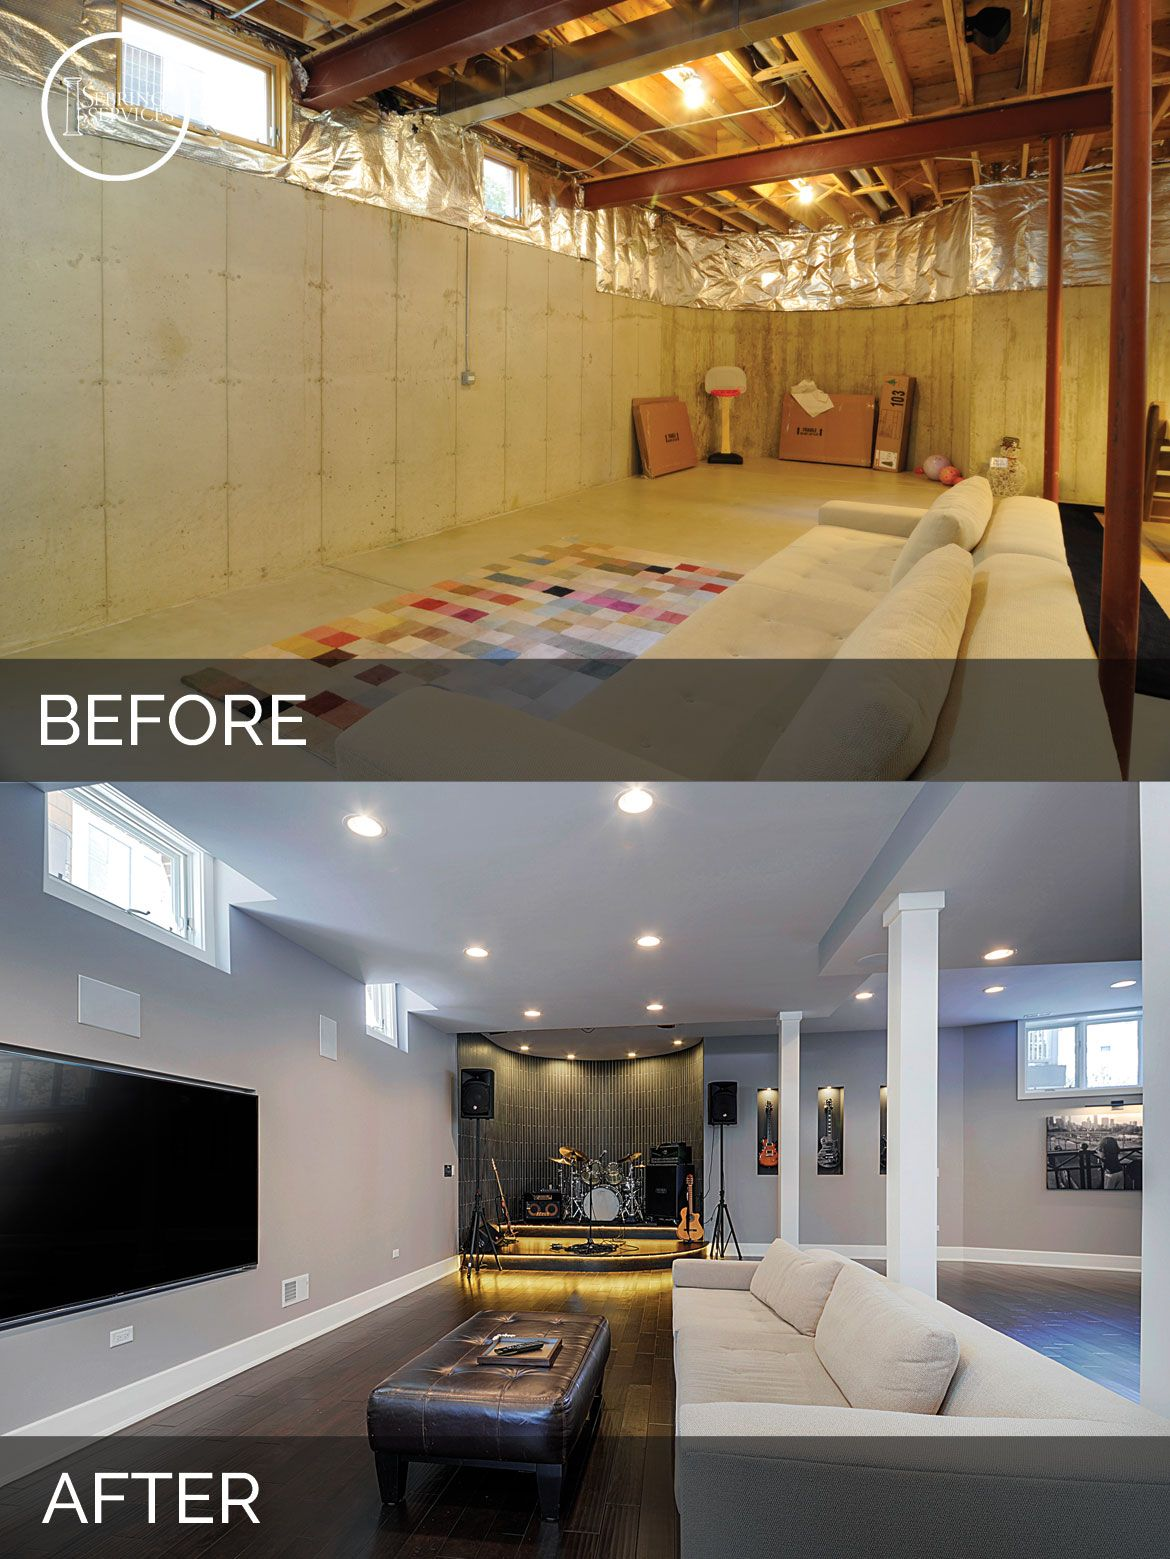 Sidd Nisha S Basement Before After Pictures Basement Makeover Home Remodeling Contractors Room Remodeling